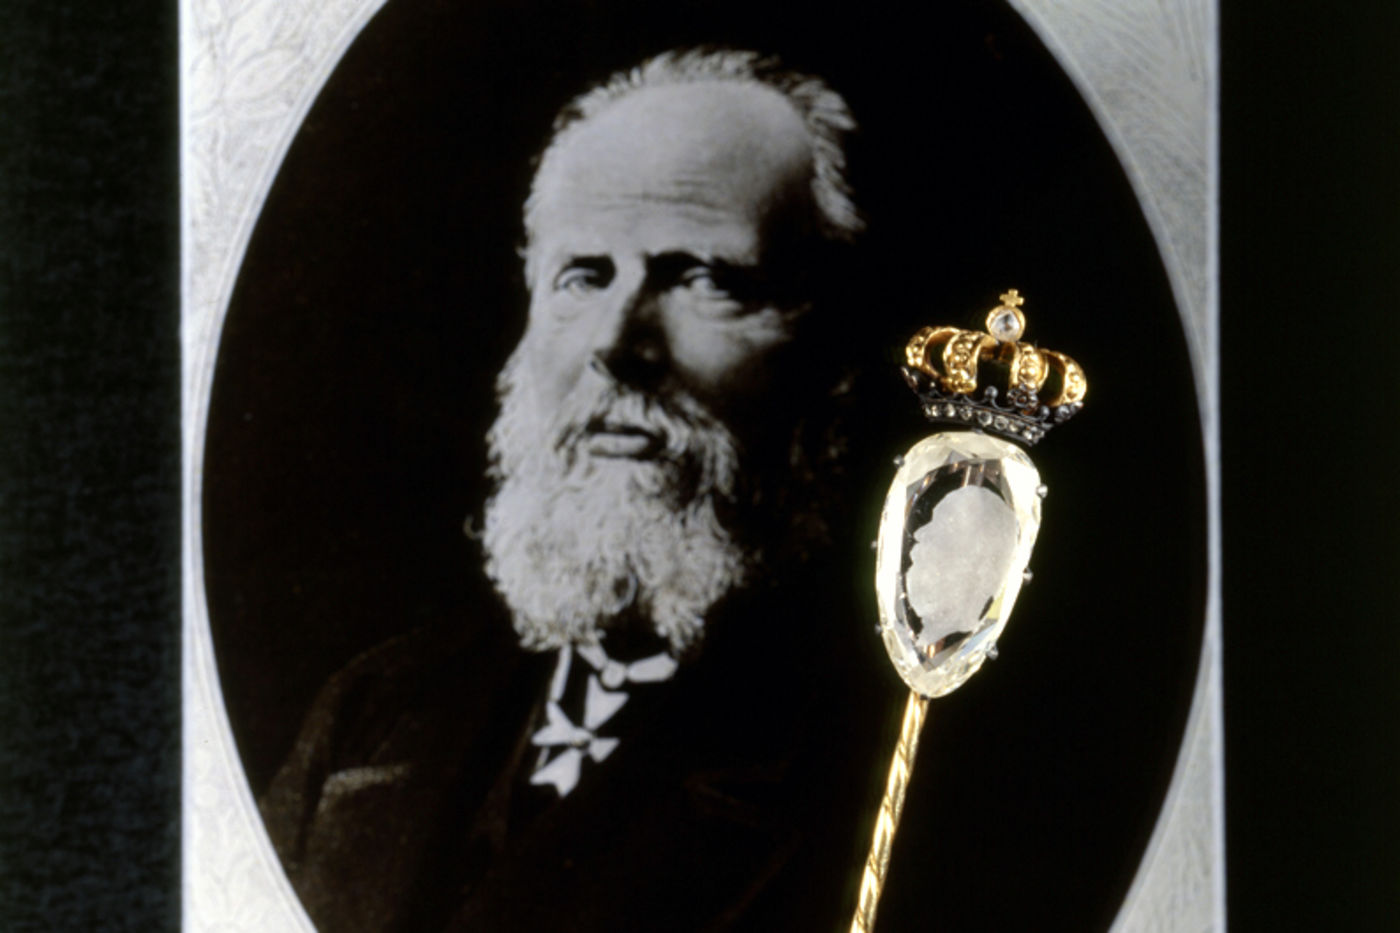 A very large diamond with a bearded man's profile carved into it (King William II of Holland). The diamond has a gold crown affixed to the top. A photograph of the same man is seen in the background.